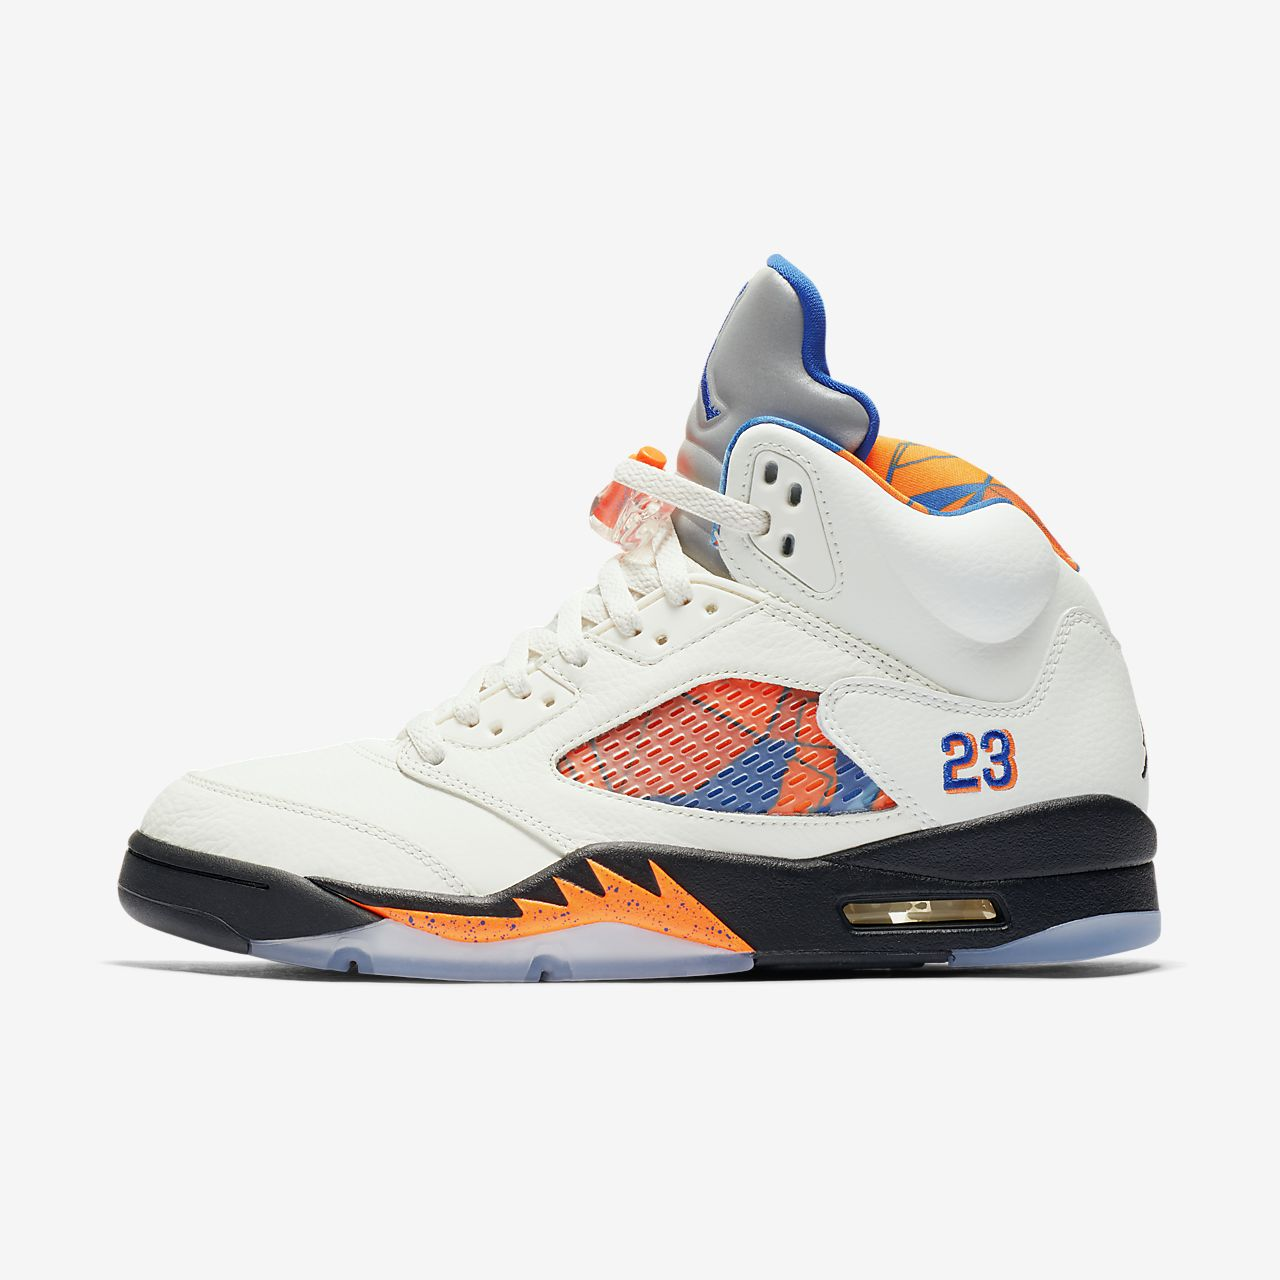 b45495ff1046 wholesale air jordan 5 retro mens shoe fb93d f9899